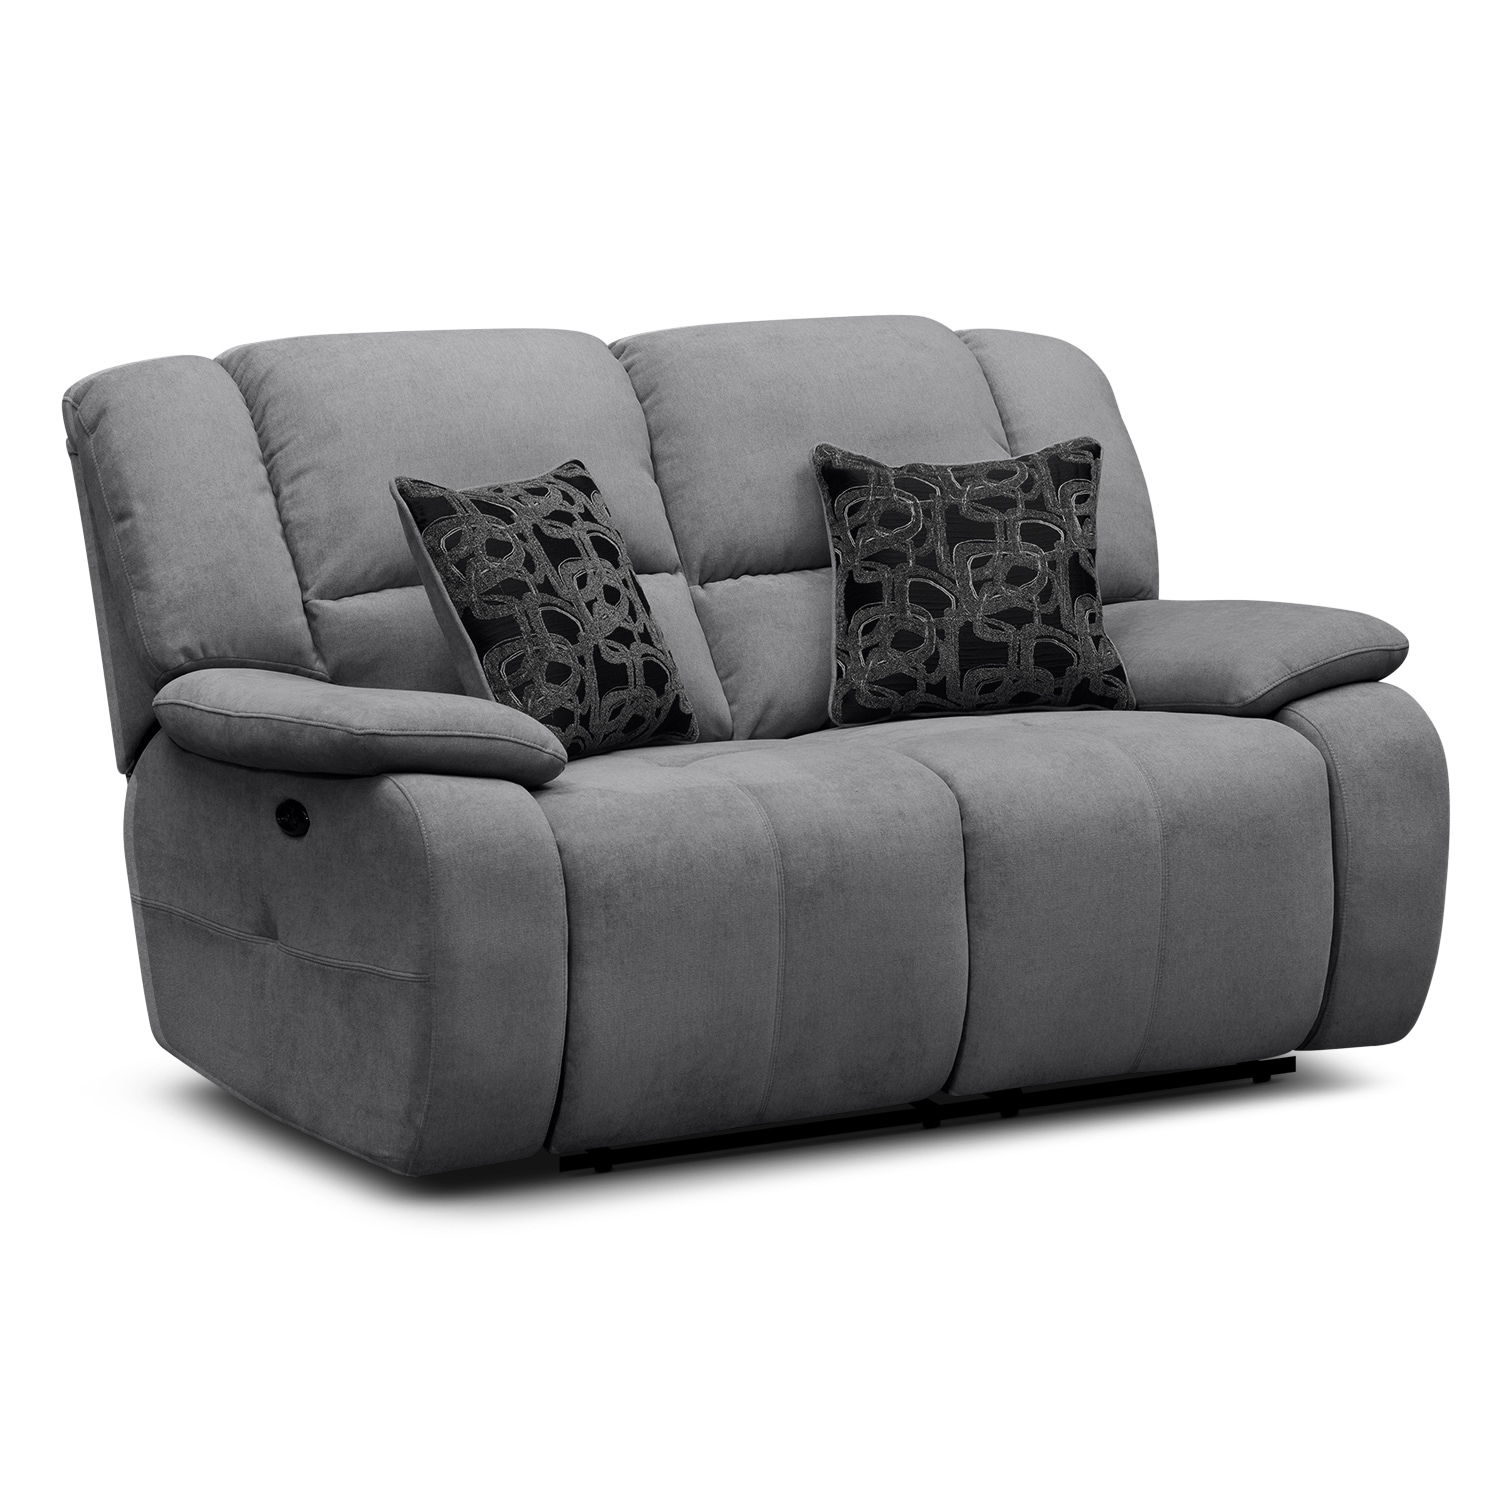 Destin gray upholstery power reclining loveseat value city furniture Loveseats that recline